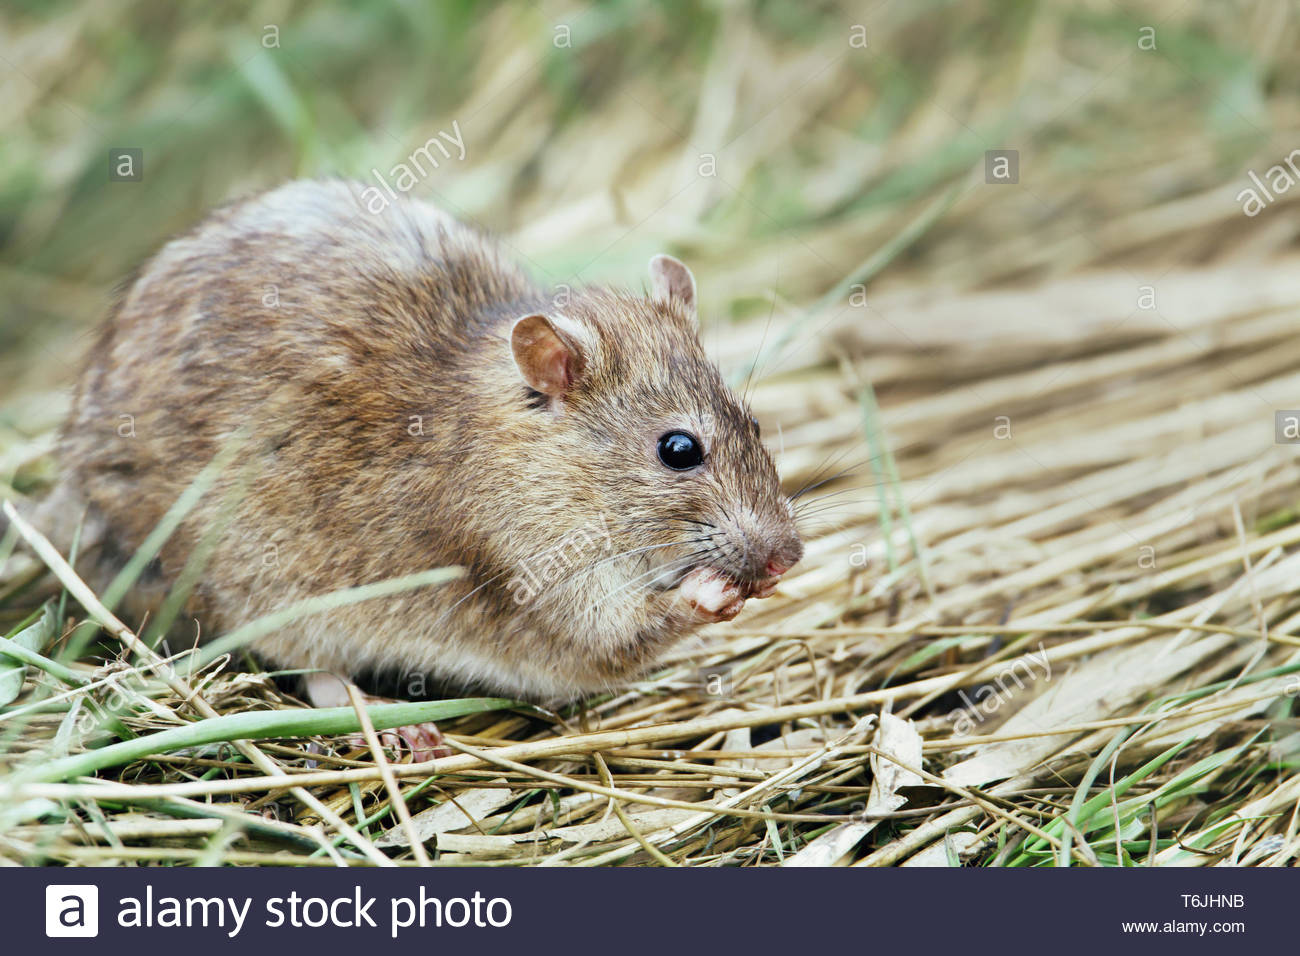 Close-up of a rat feeding in the field. - Stock Image